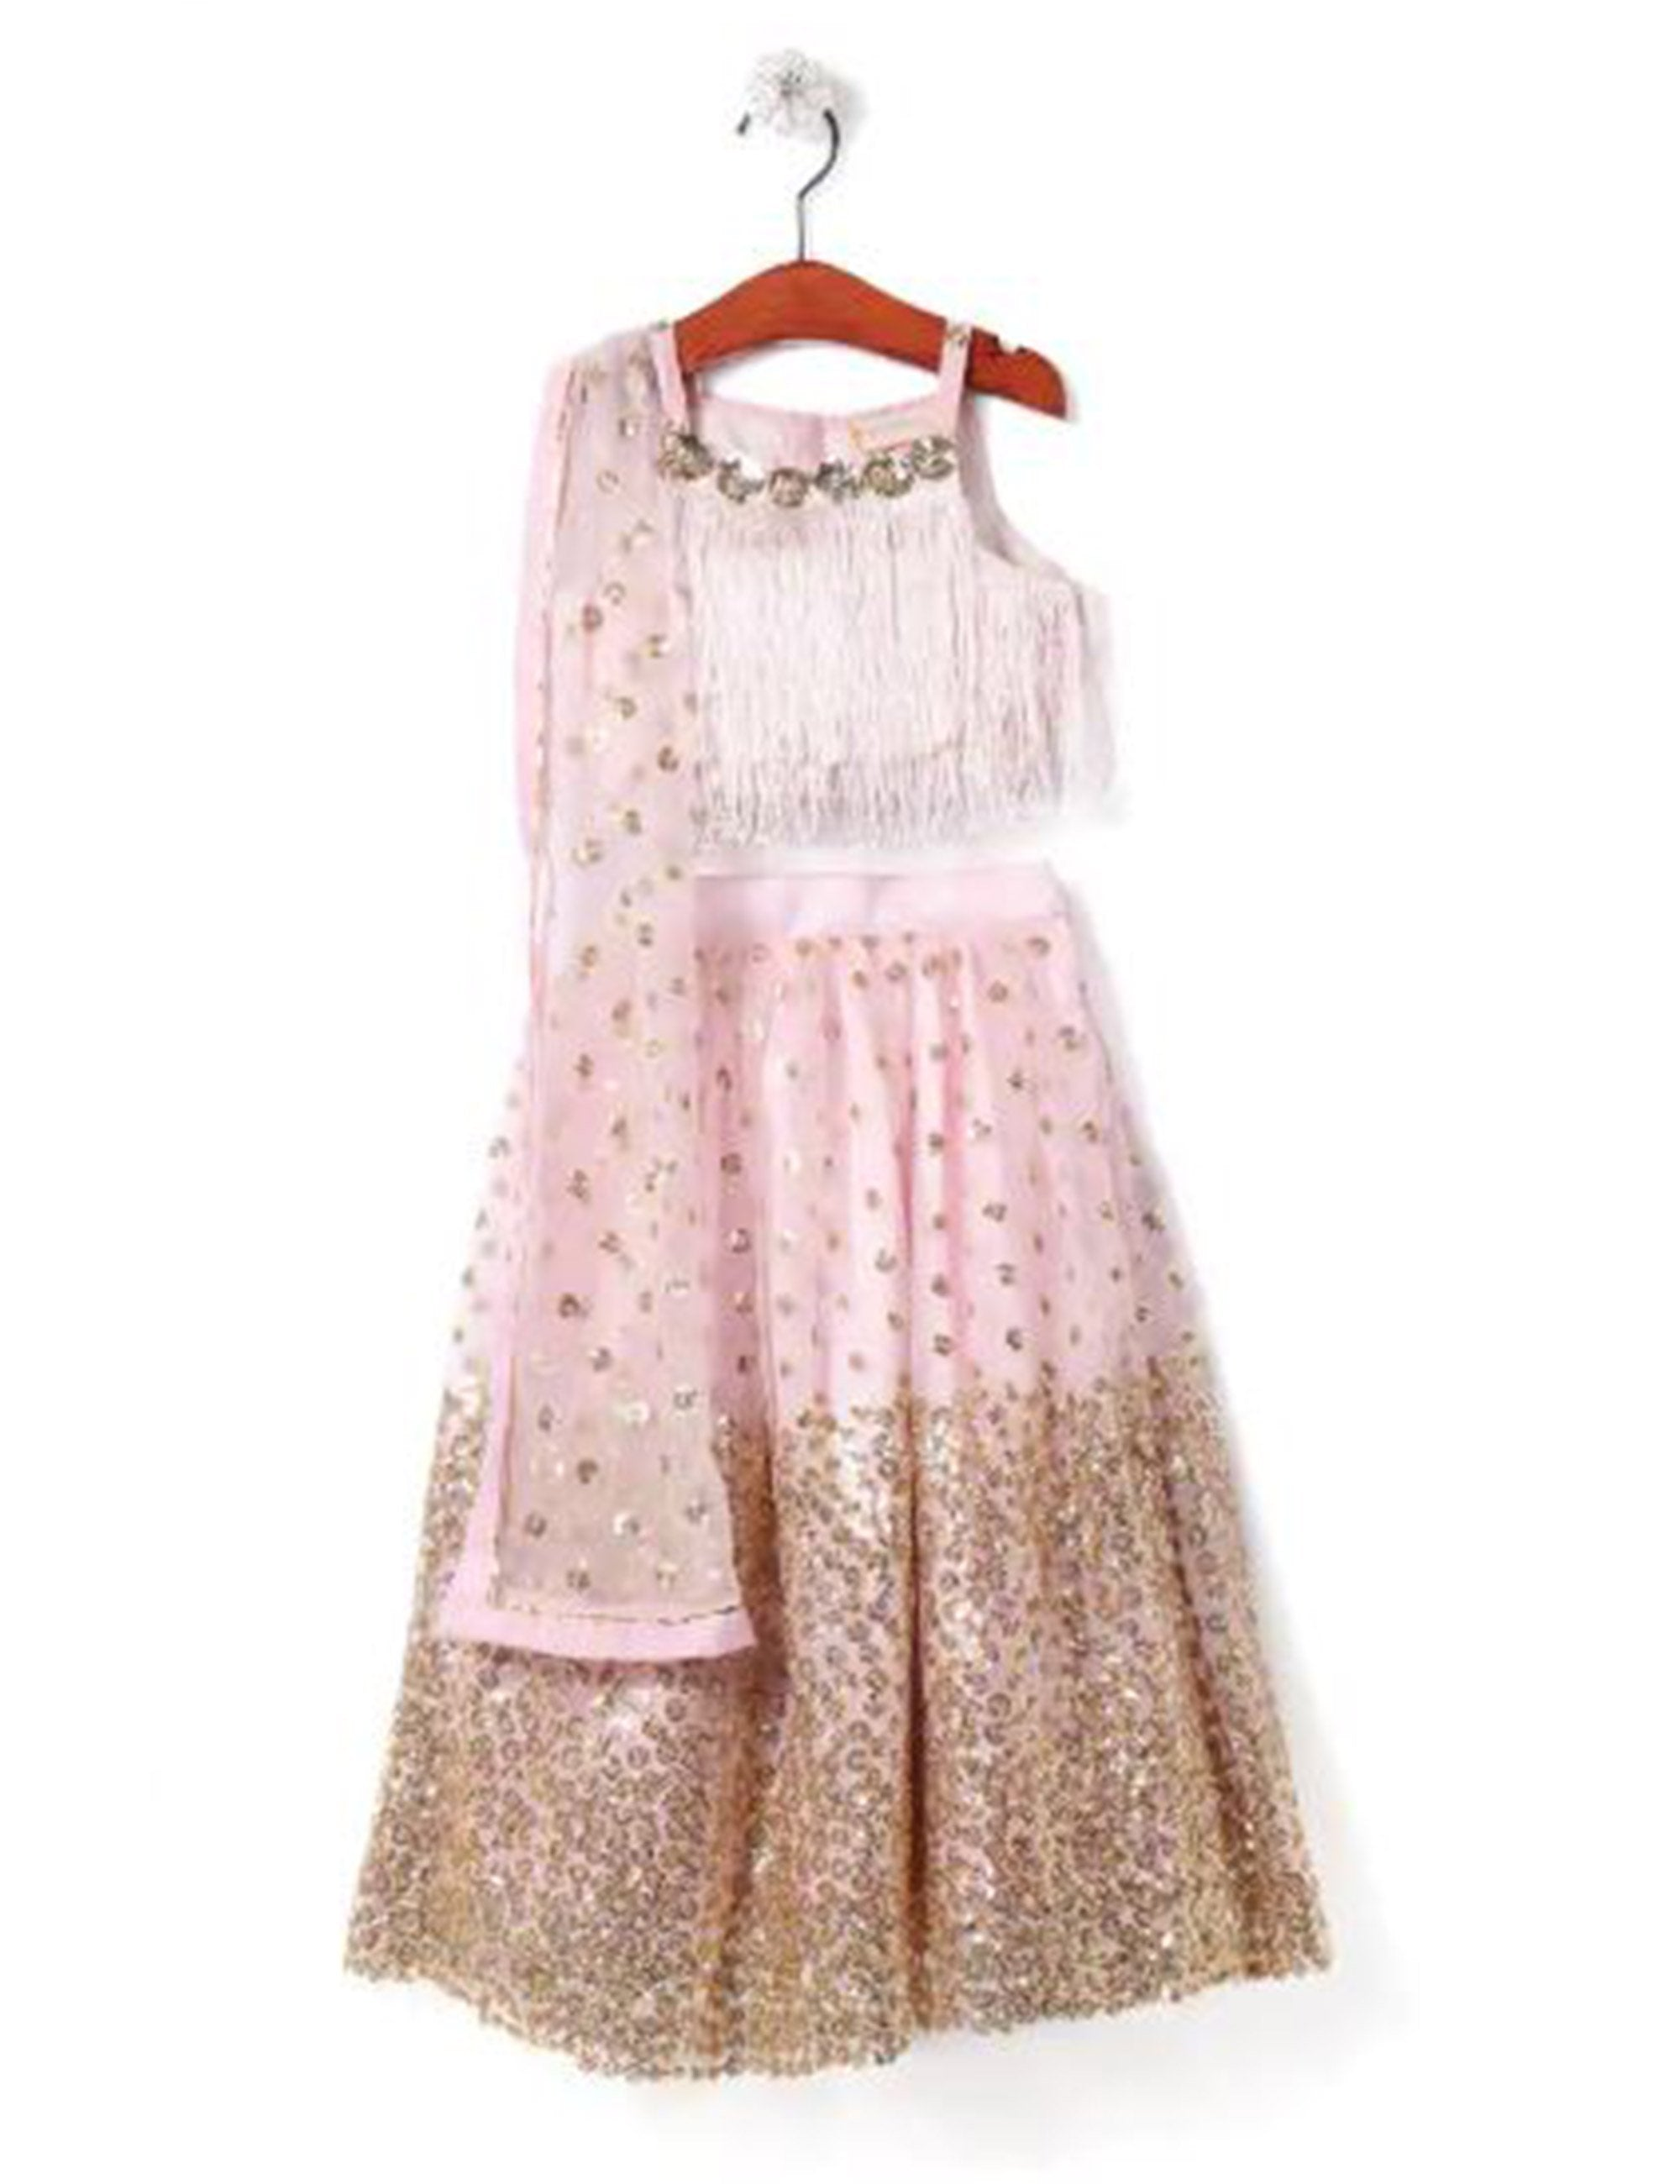 Shimmery and Glitter Lehenga Blouse with Dupatta Set - Pink